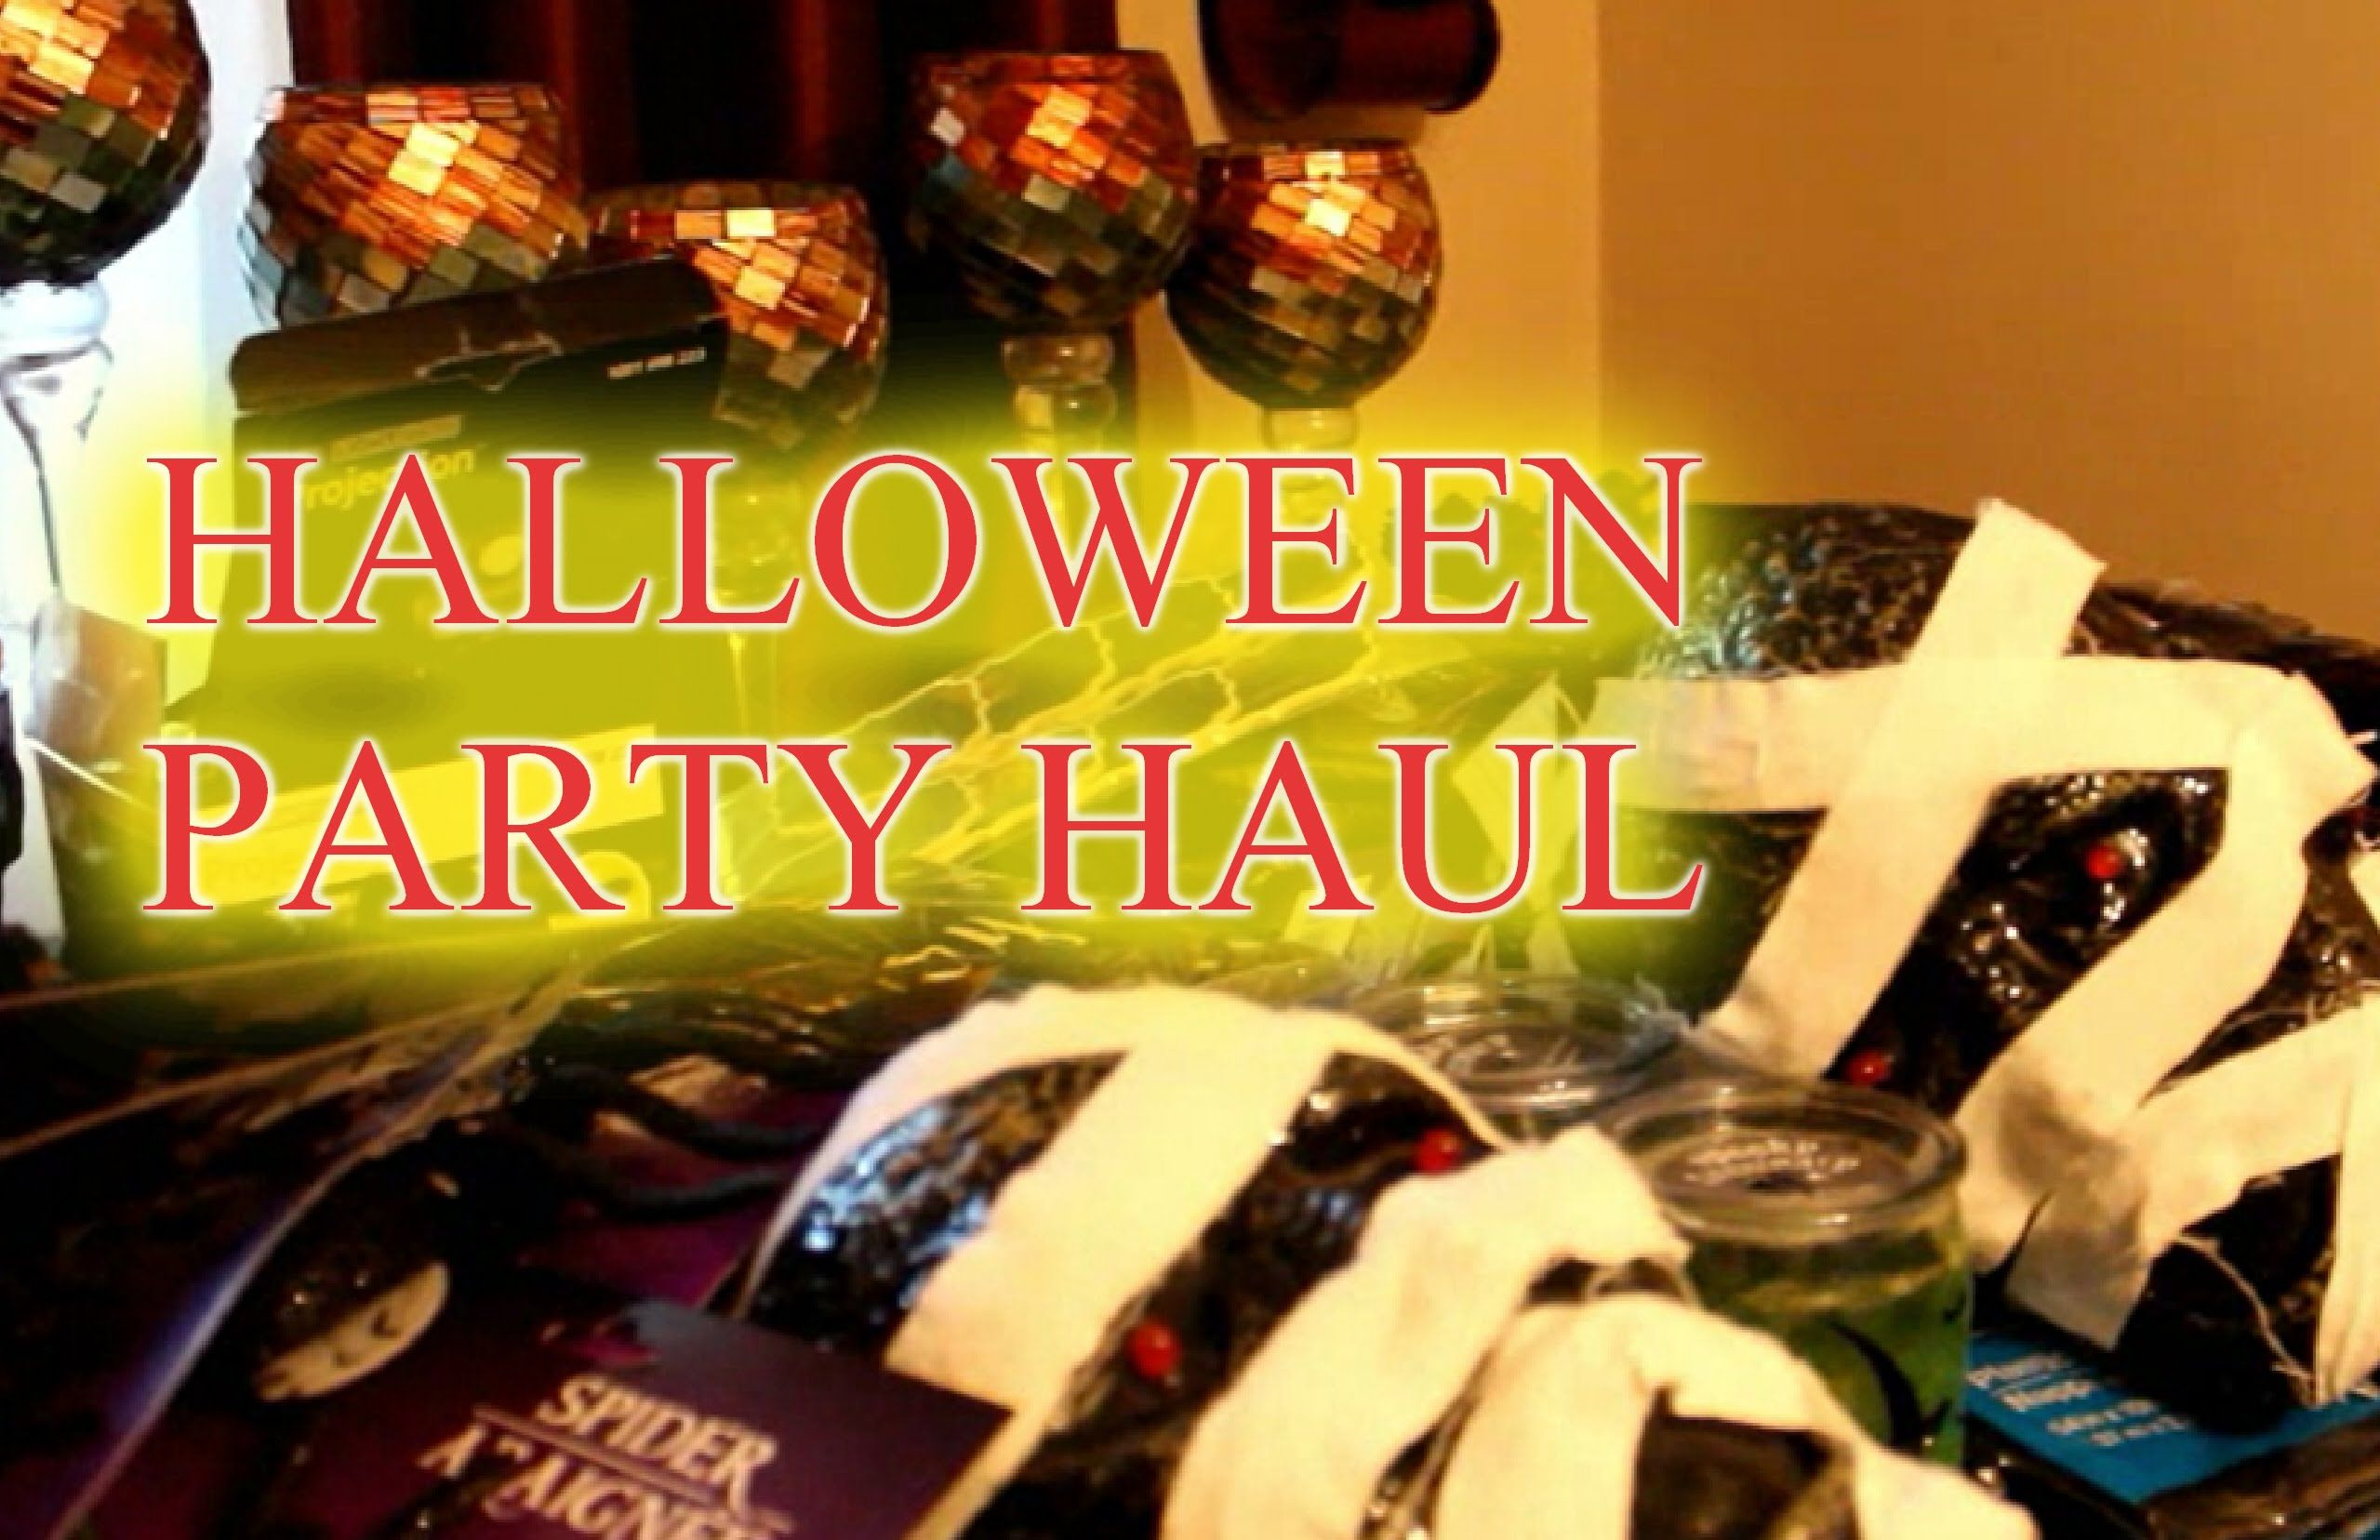 HALLOWEEN PARTY DECOR HAUL halloweem Pinterest Halloween - Hobby Lobby Halloween Decorations